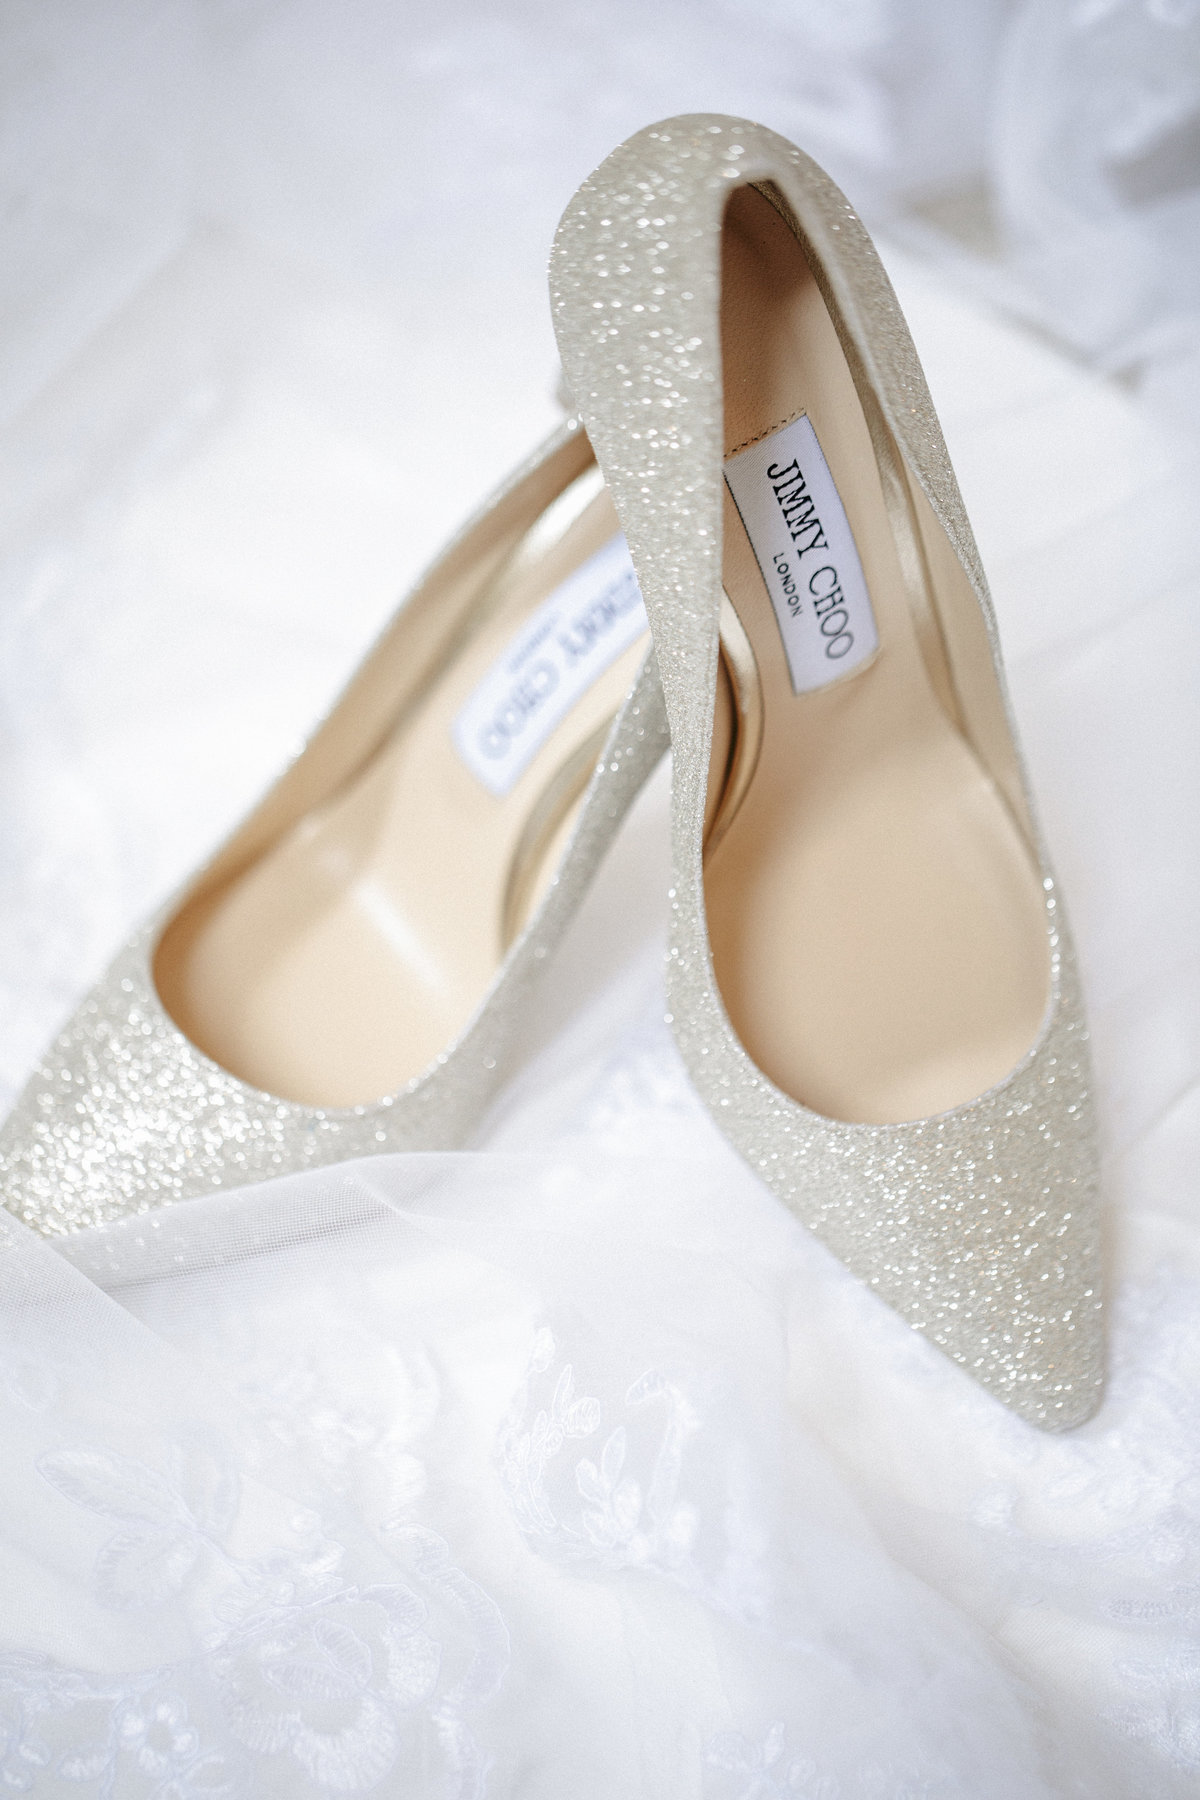 jimmy choo shoes for clarks landing yacht club wedding